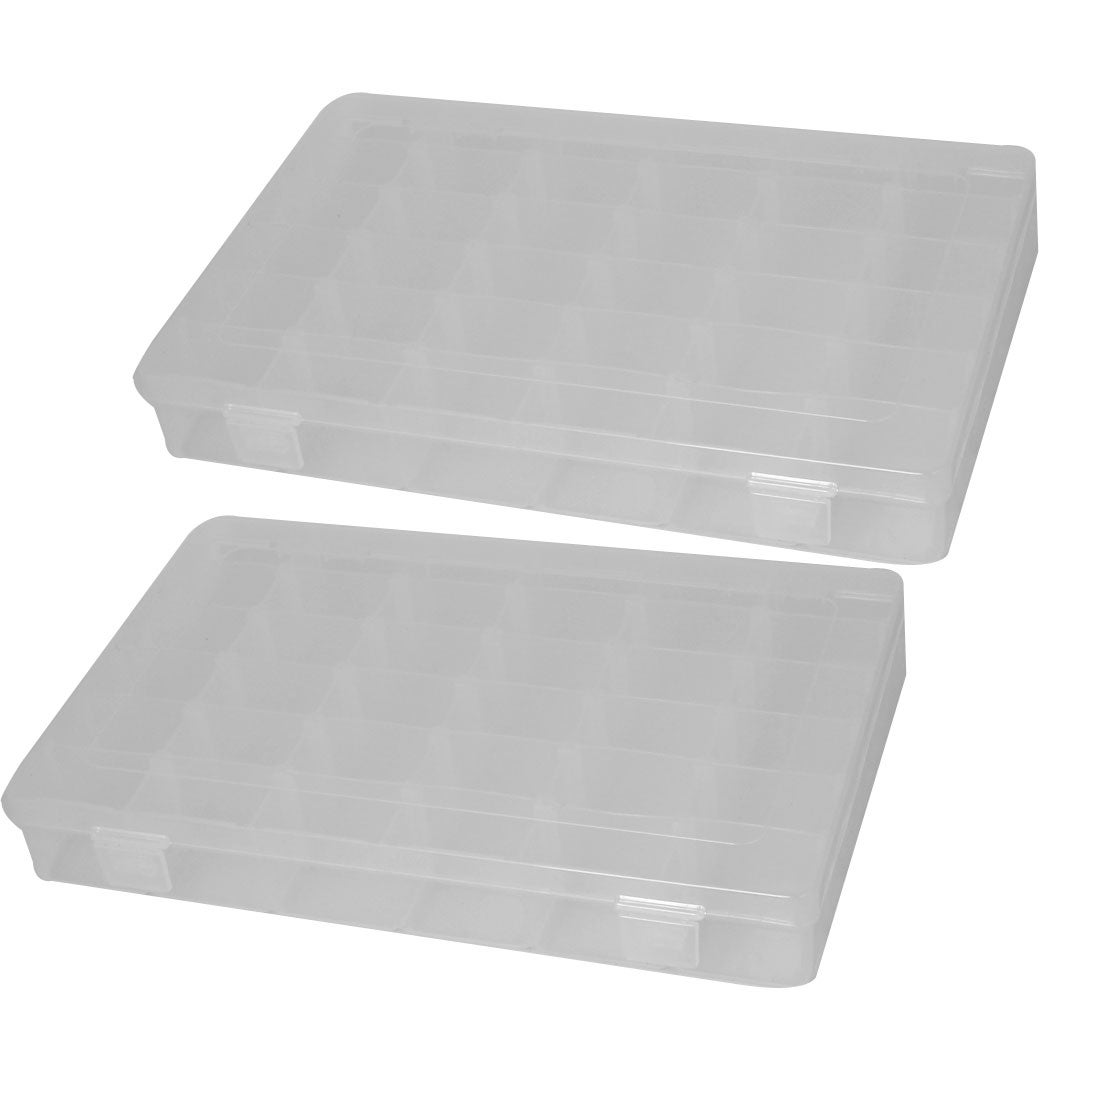 Plastic Case 36 Compartments Fishing Lure Bait Storage Angling Tackle Box 2PCS